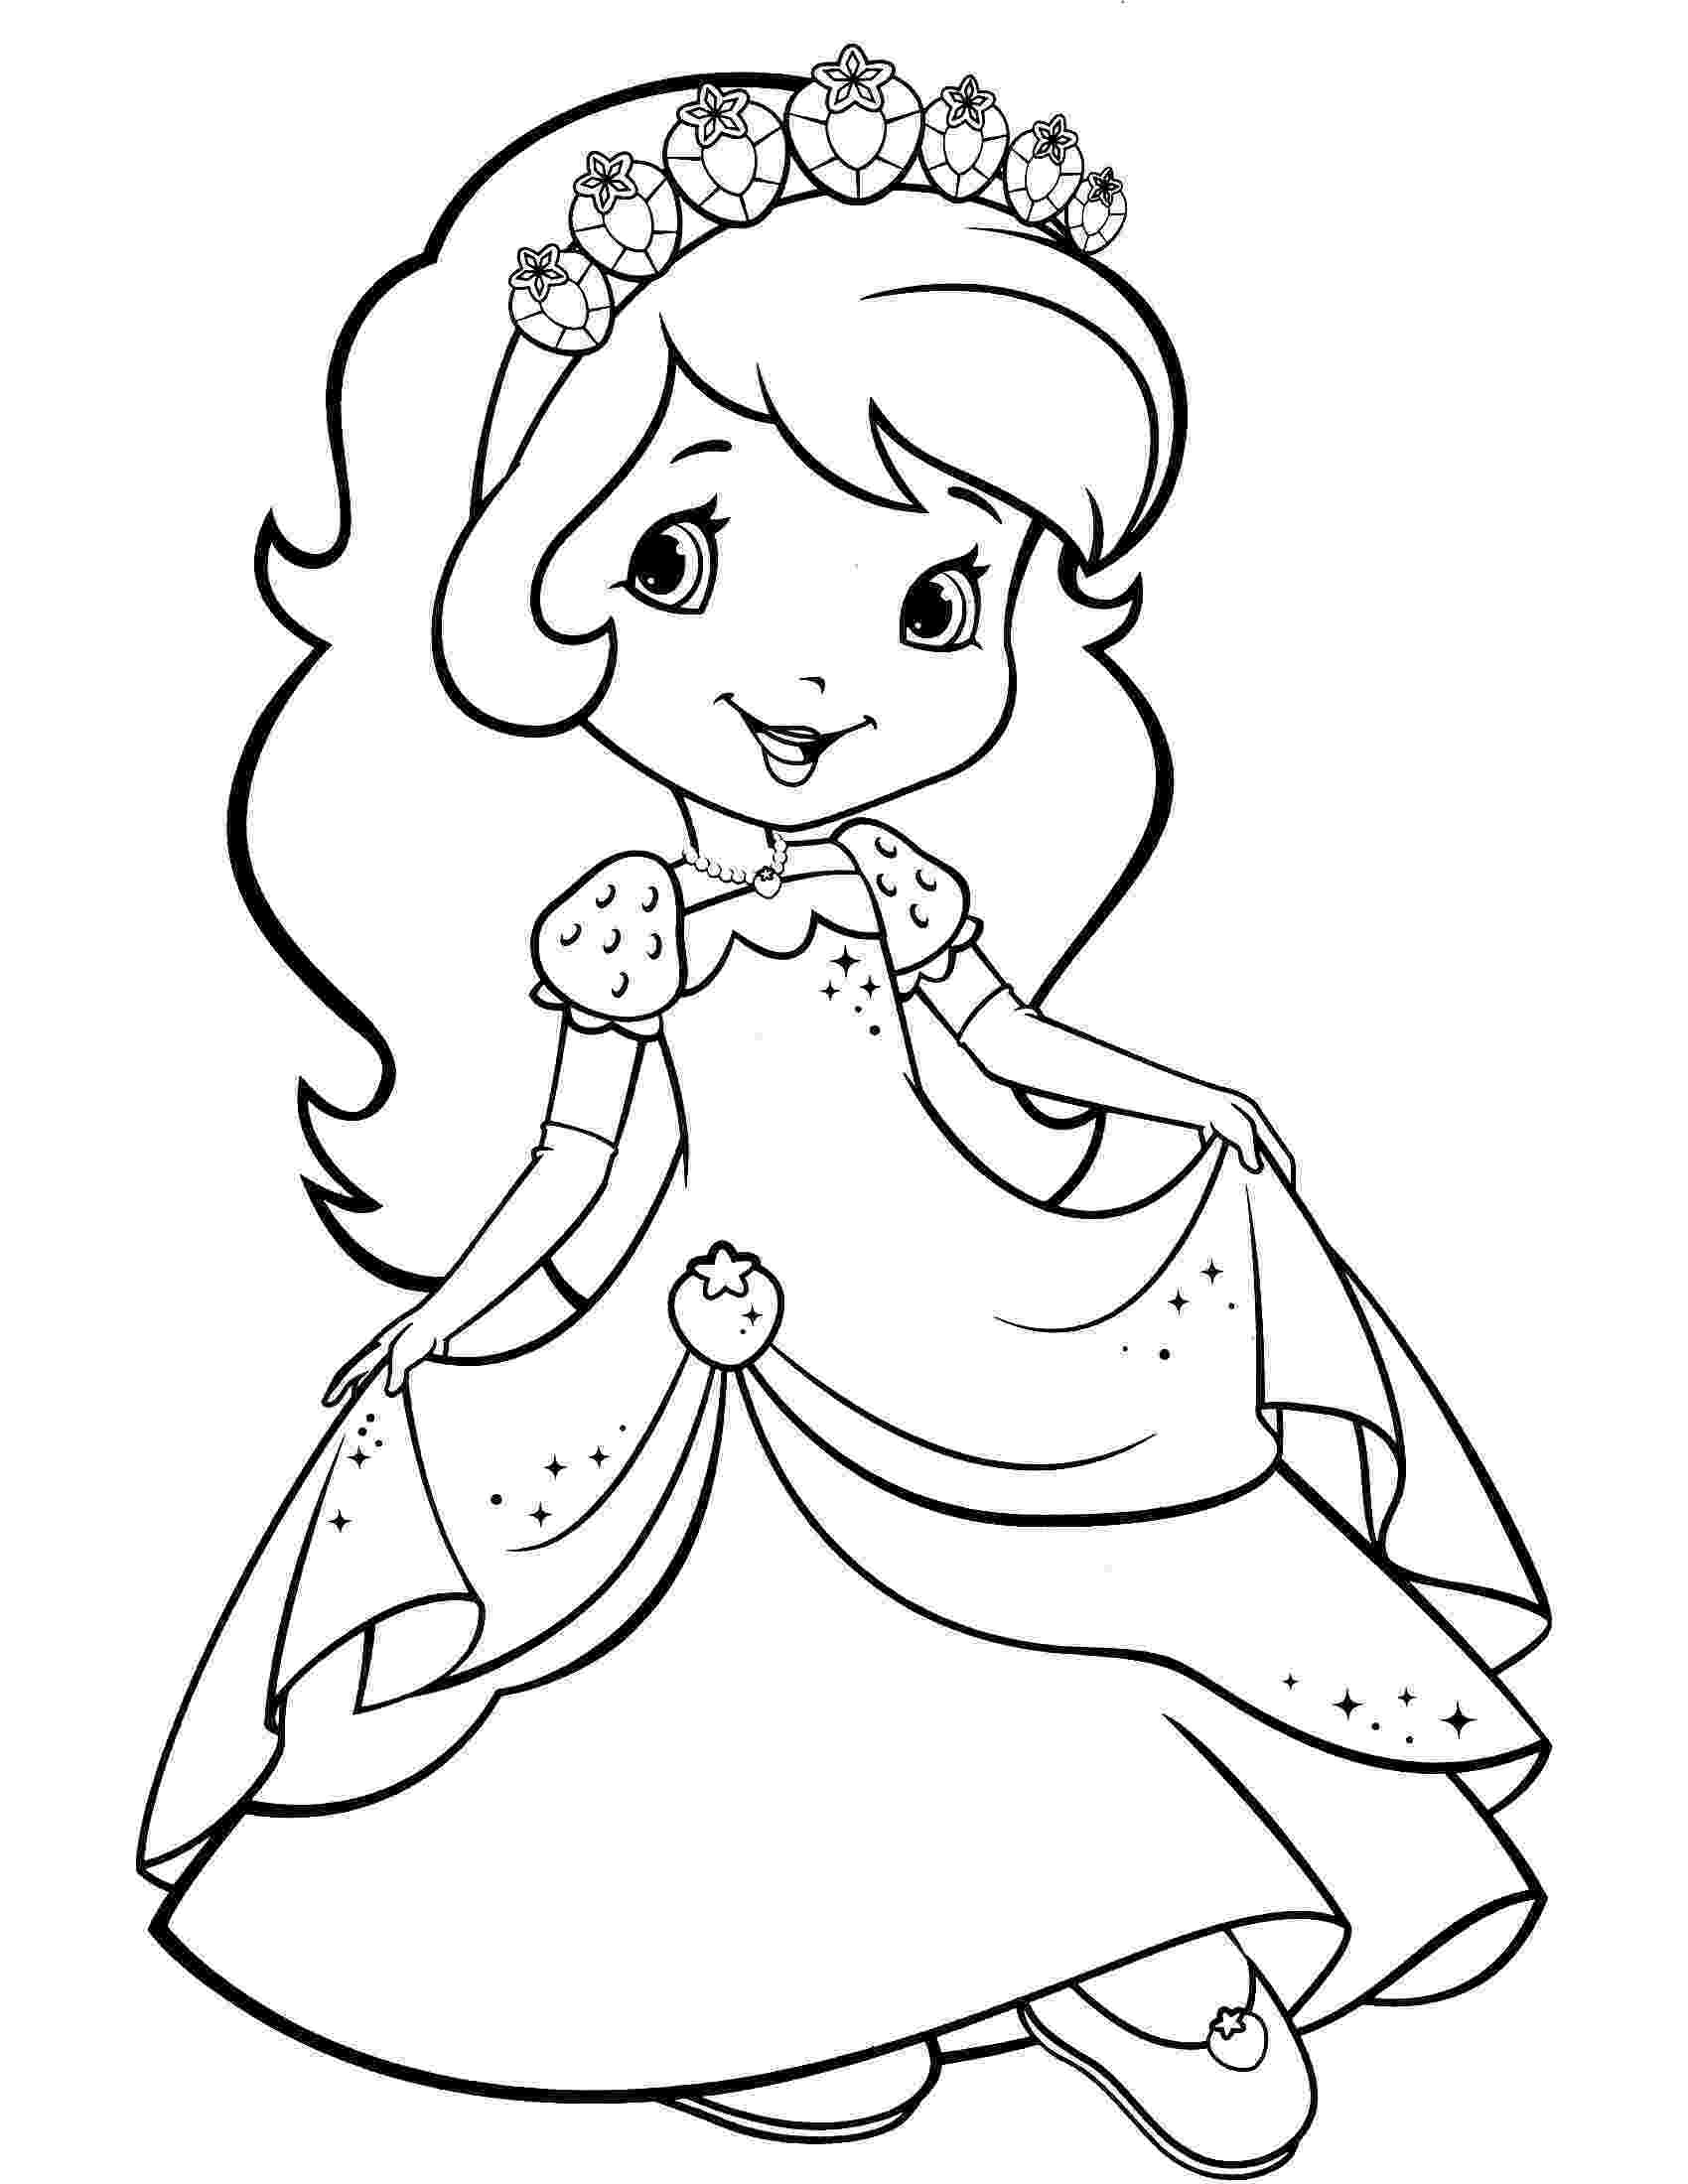 strawberry shortcake princess coloring pages strawberry shortcake coloring page strawberry shortcake pages coloring strawberry princess shortcake